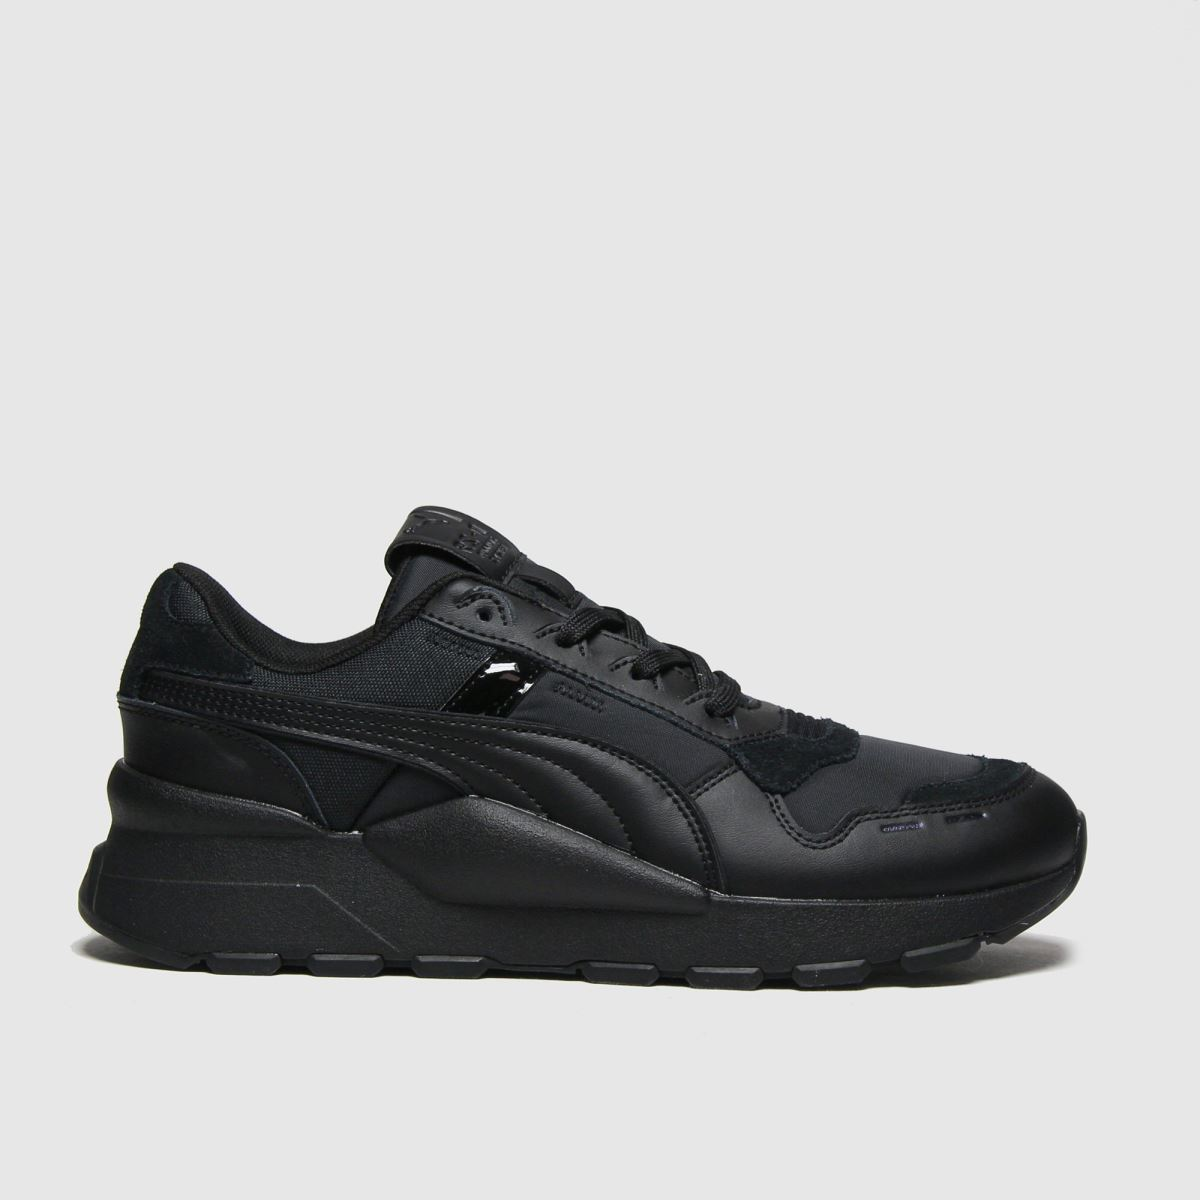 PUMA Black Rs 2.0 Futura Trainers